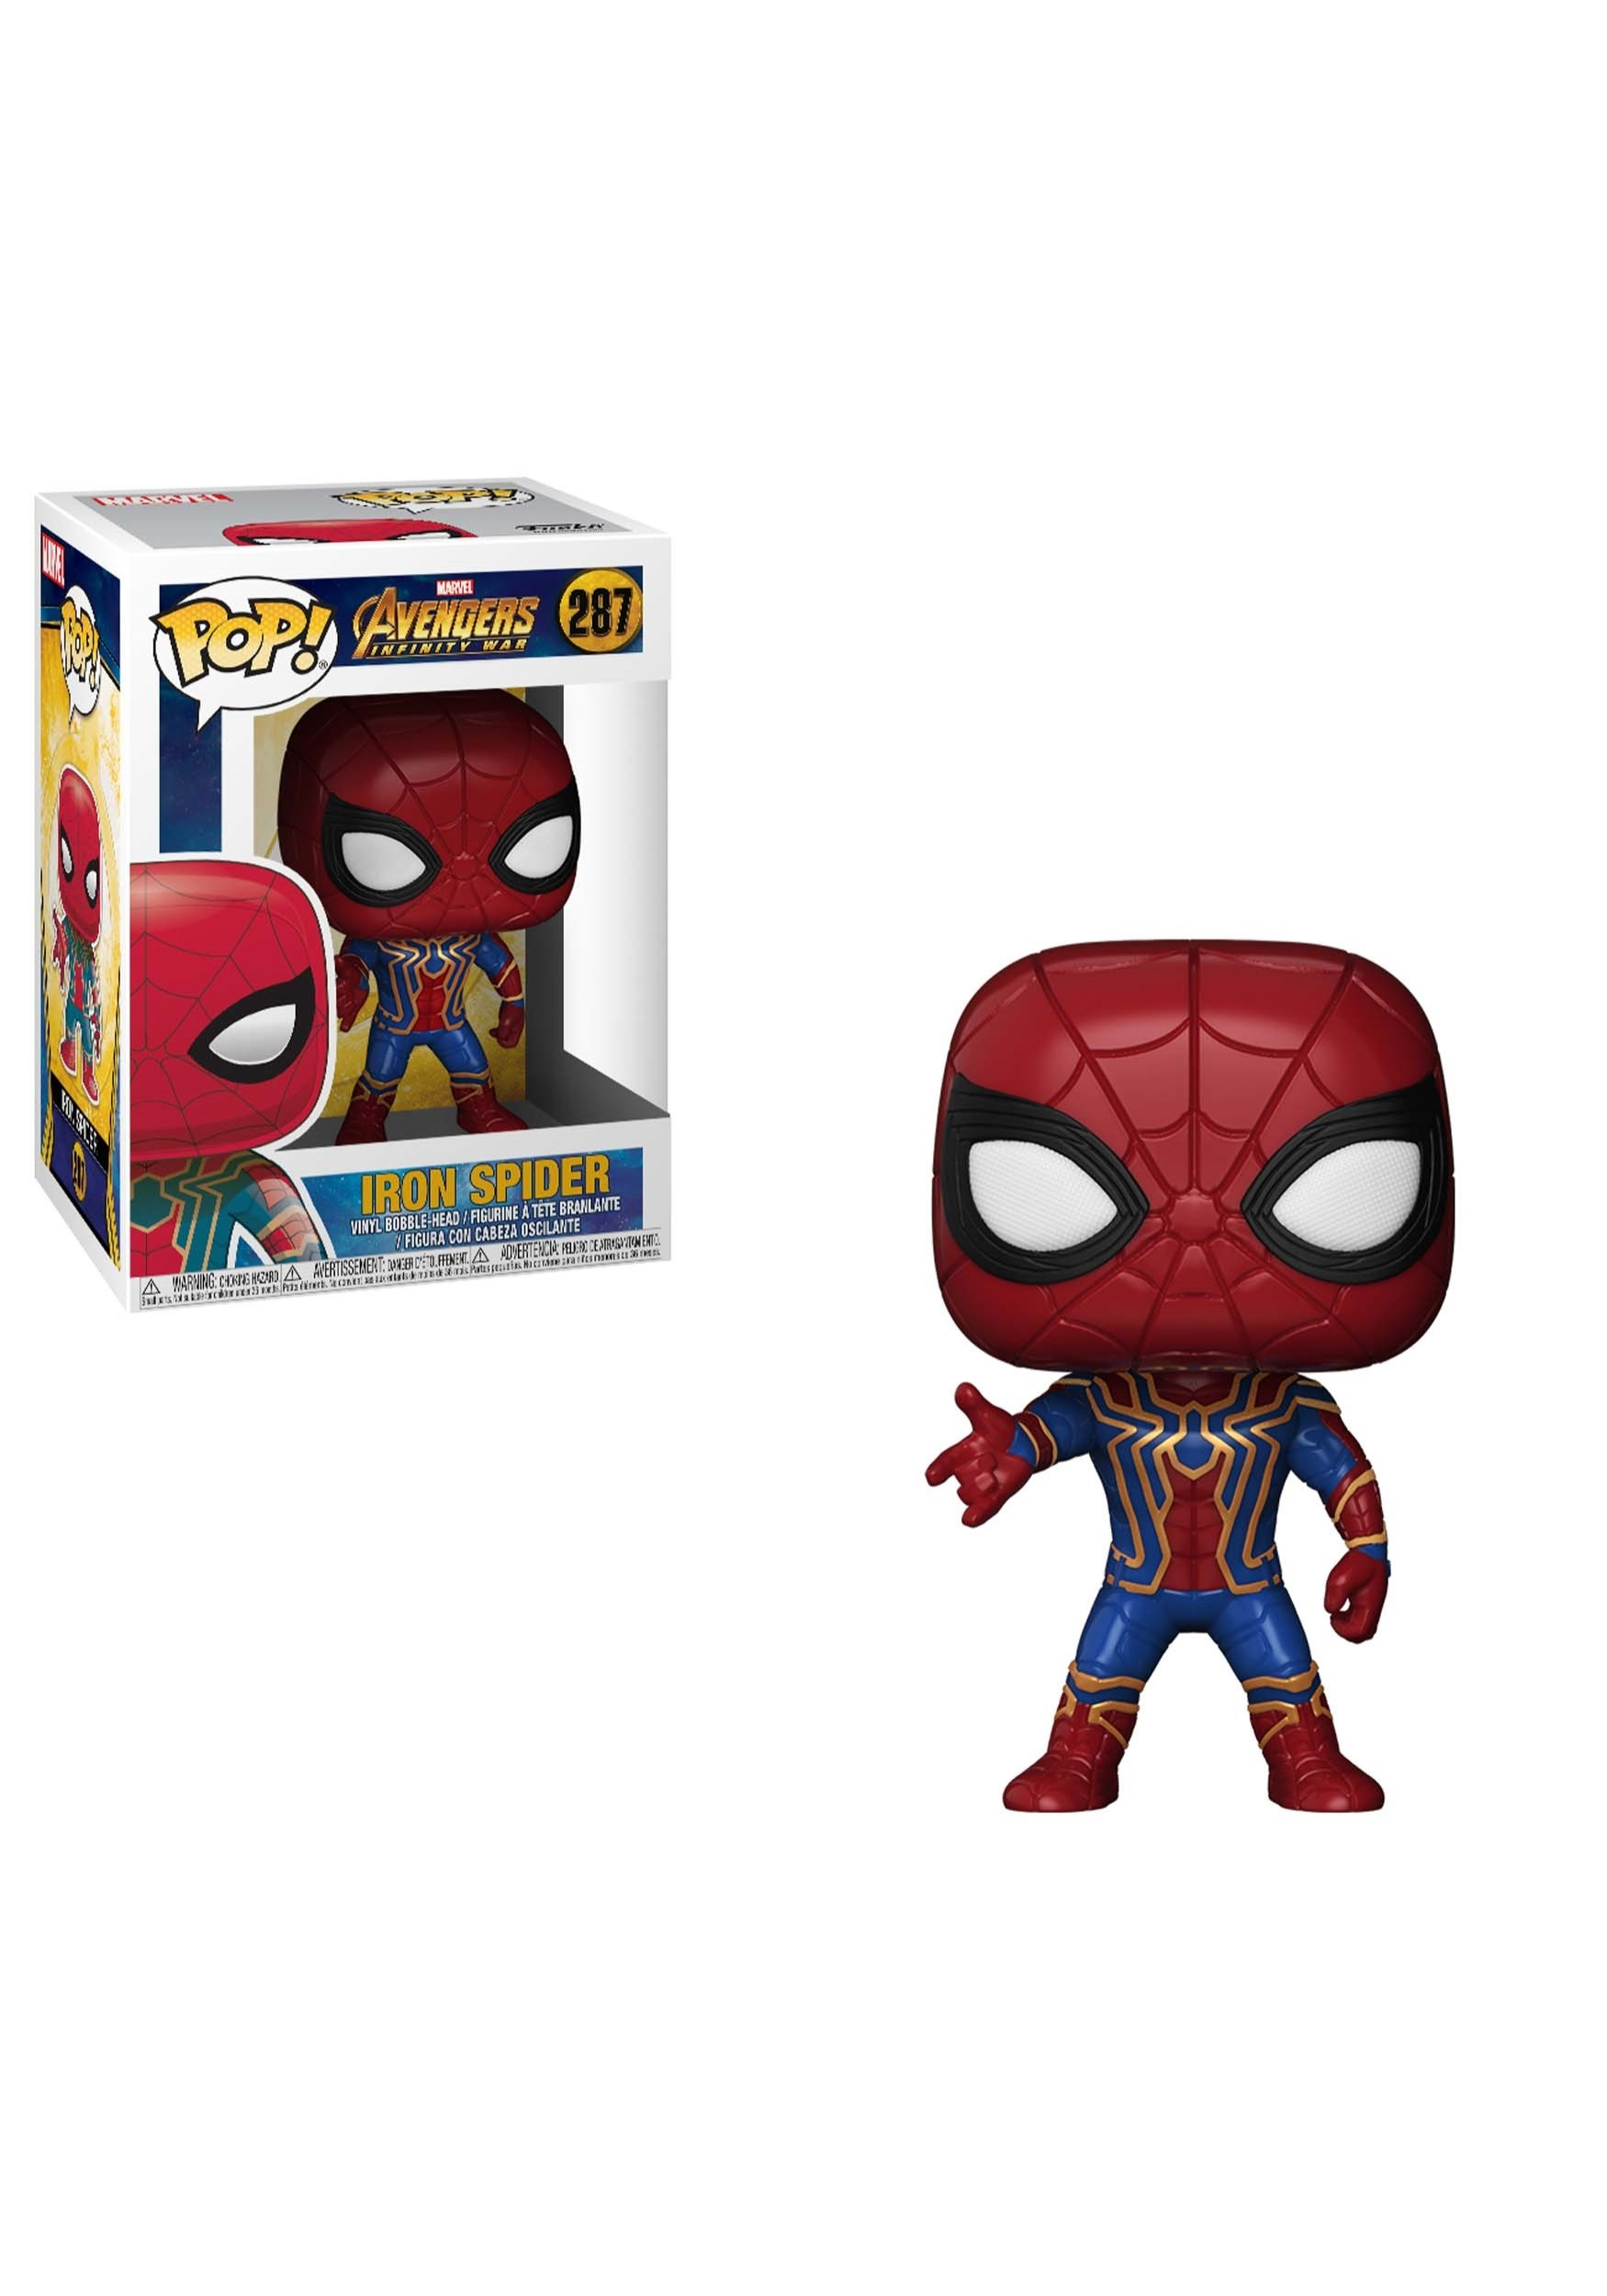 ada6b8e2102e8 POP! Marvel  Avengers Infinity War Iron Spider Bobblehead Figure